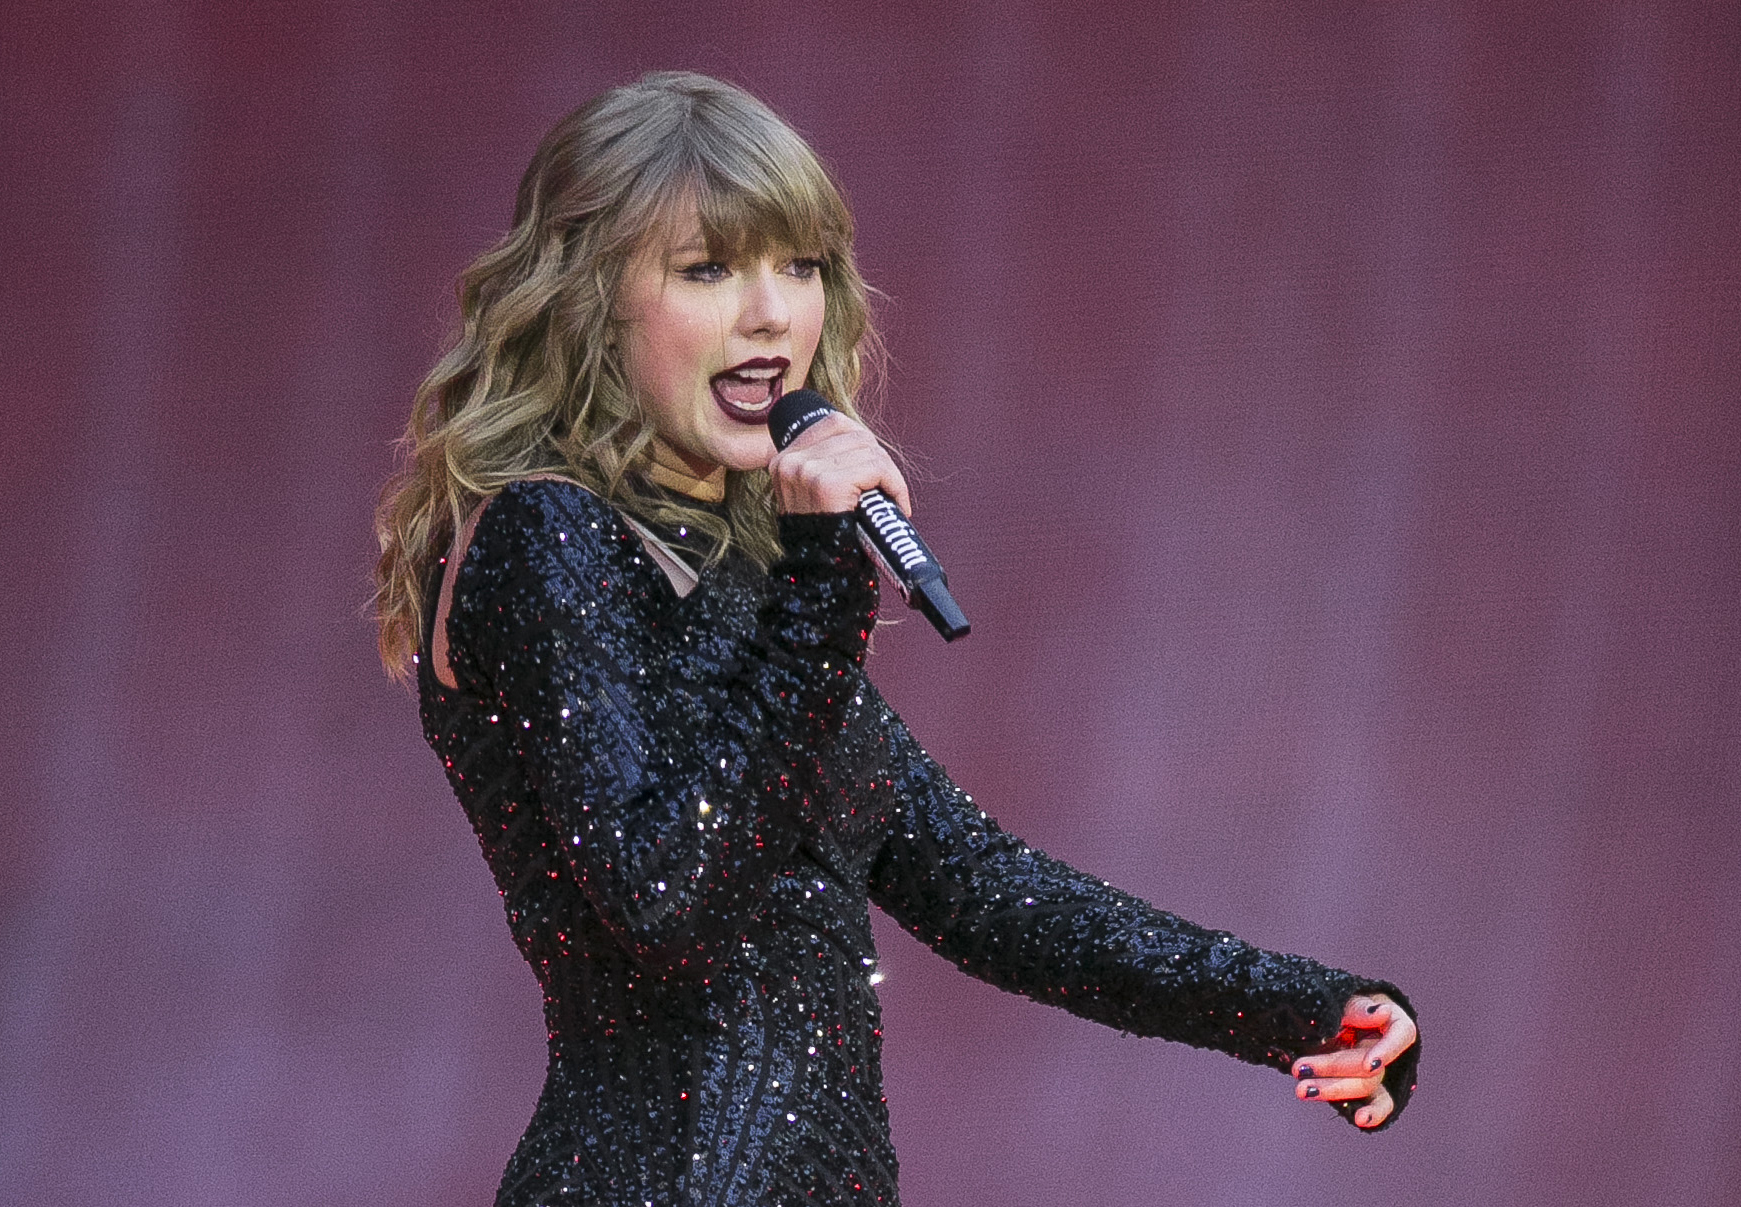 People_Taylor_Swift_07117-159532.jpg33392982